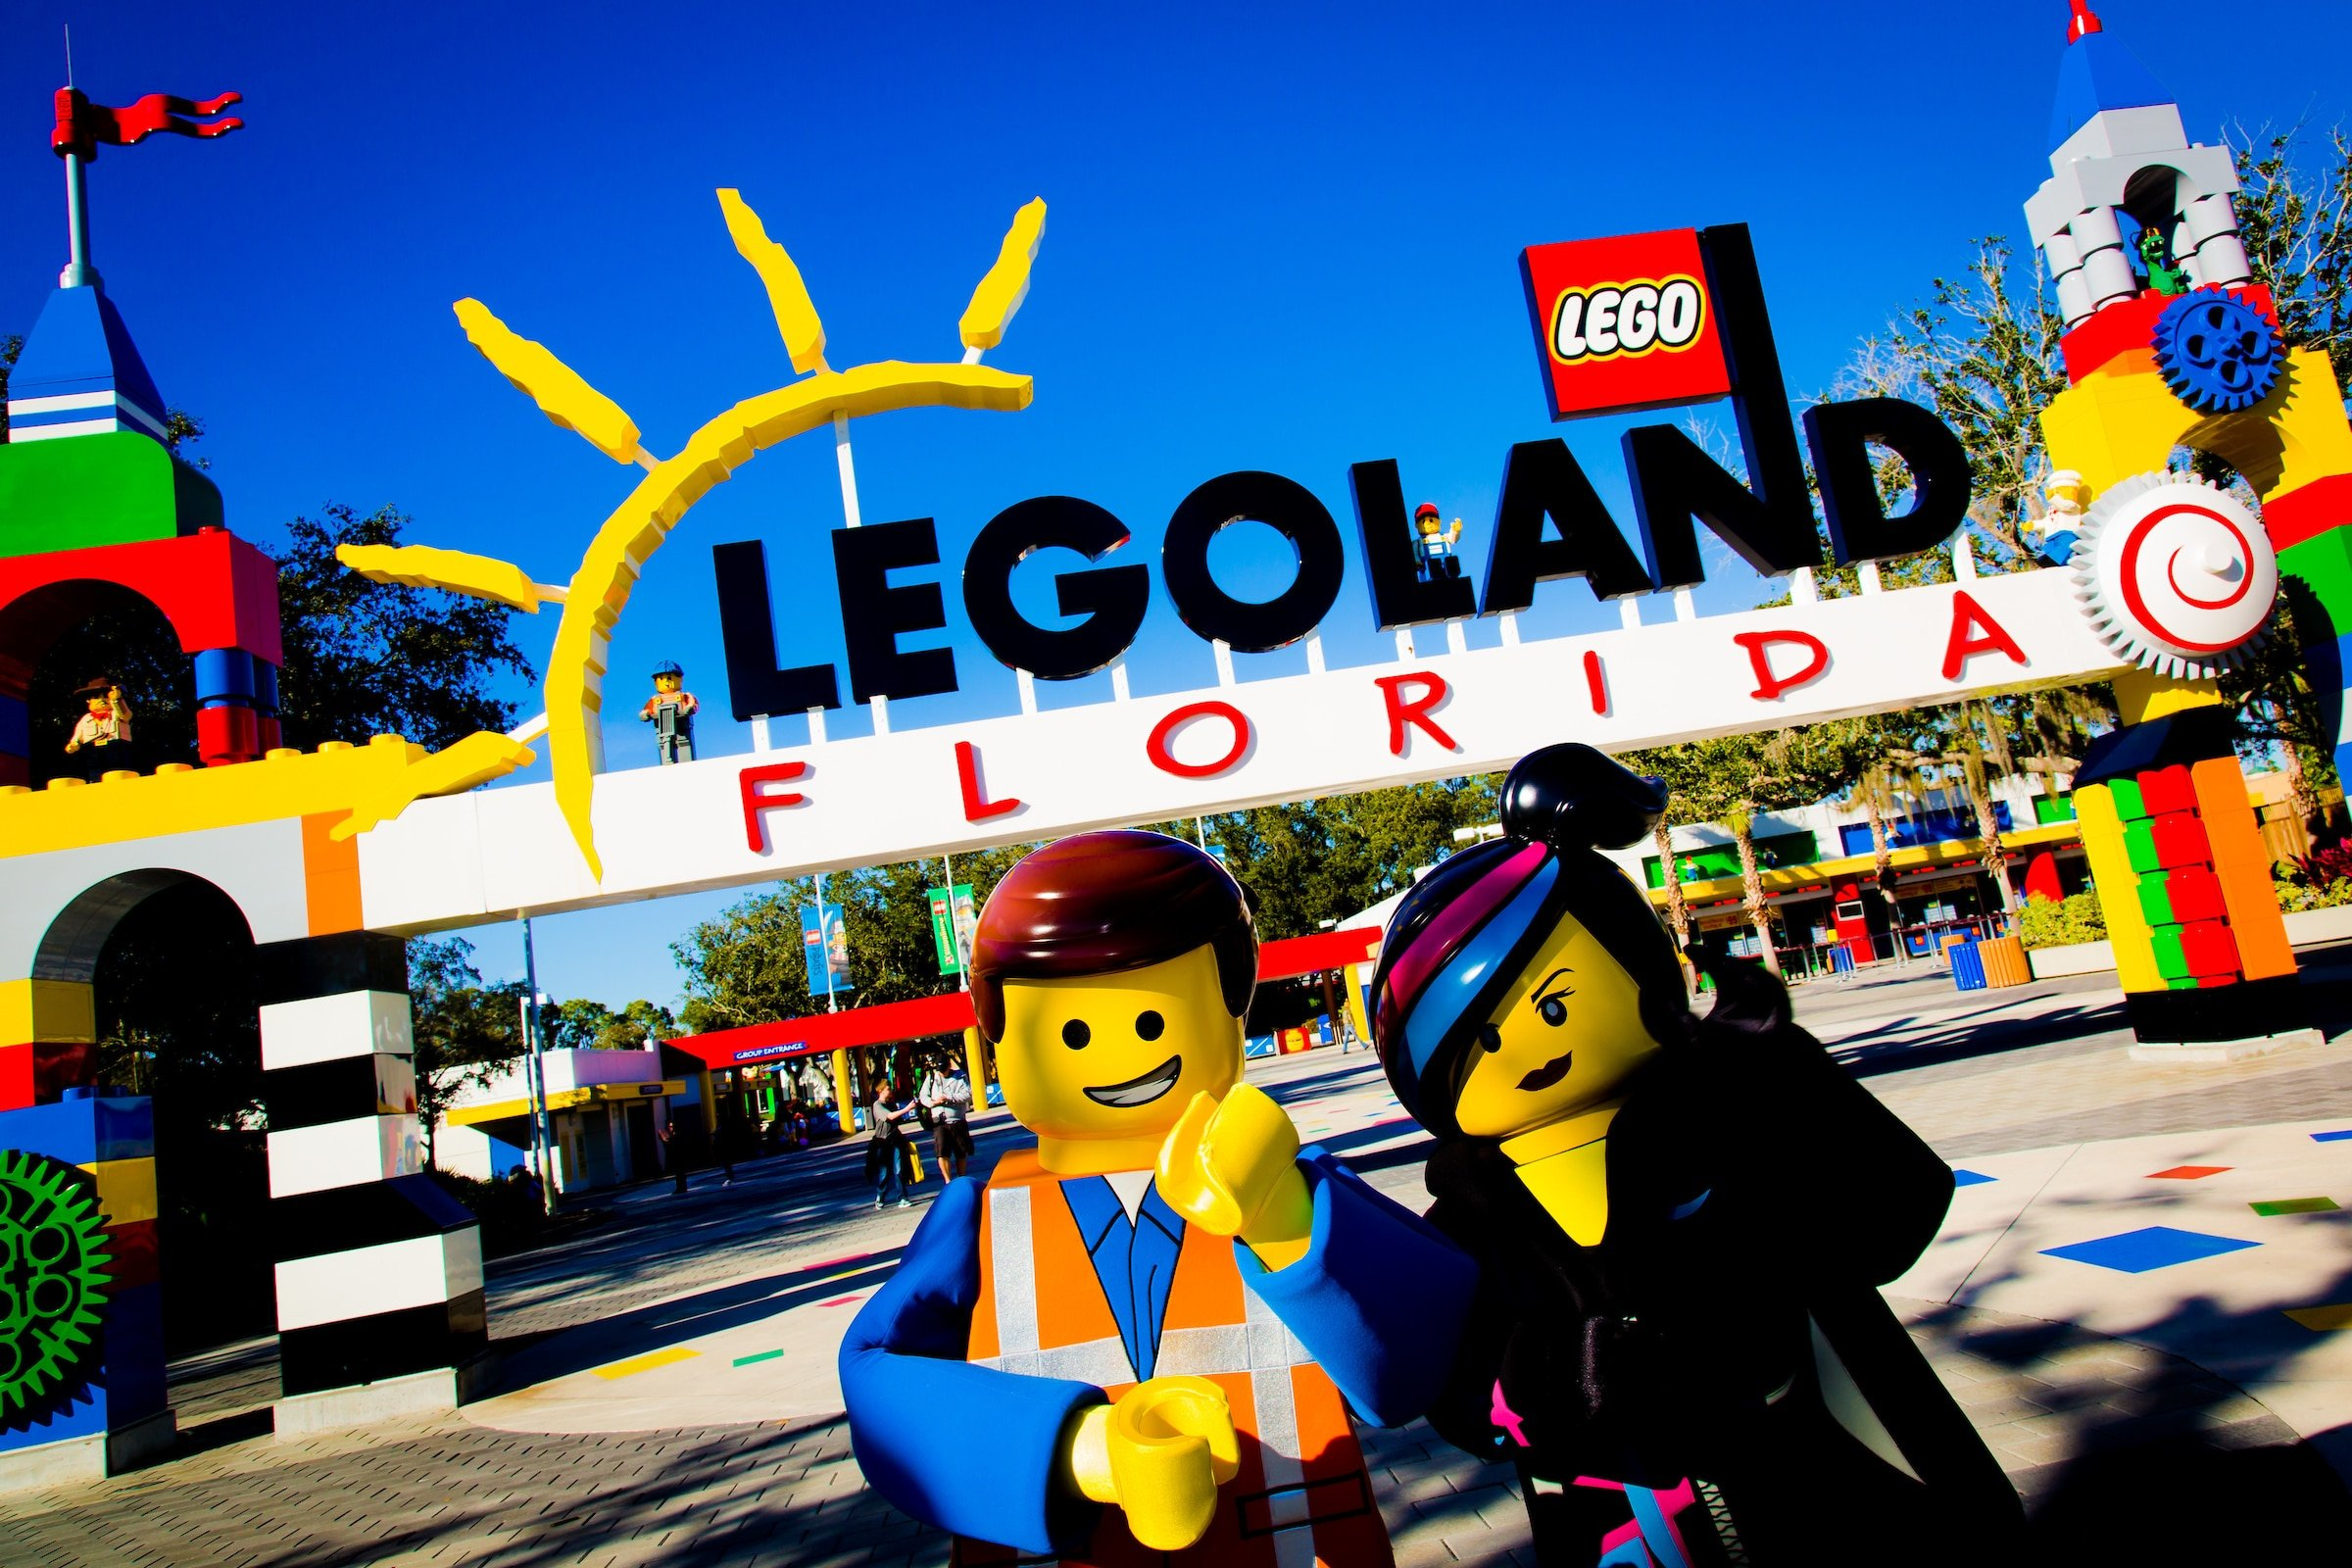 LEGO characters stand in front of the LEGOLAND Florida entrance.